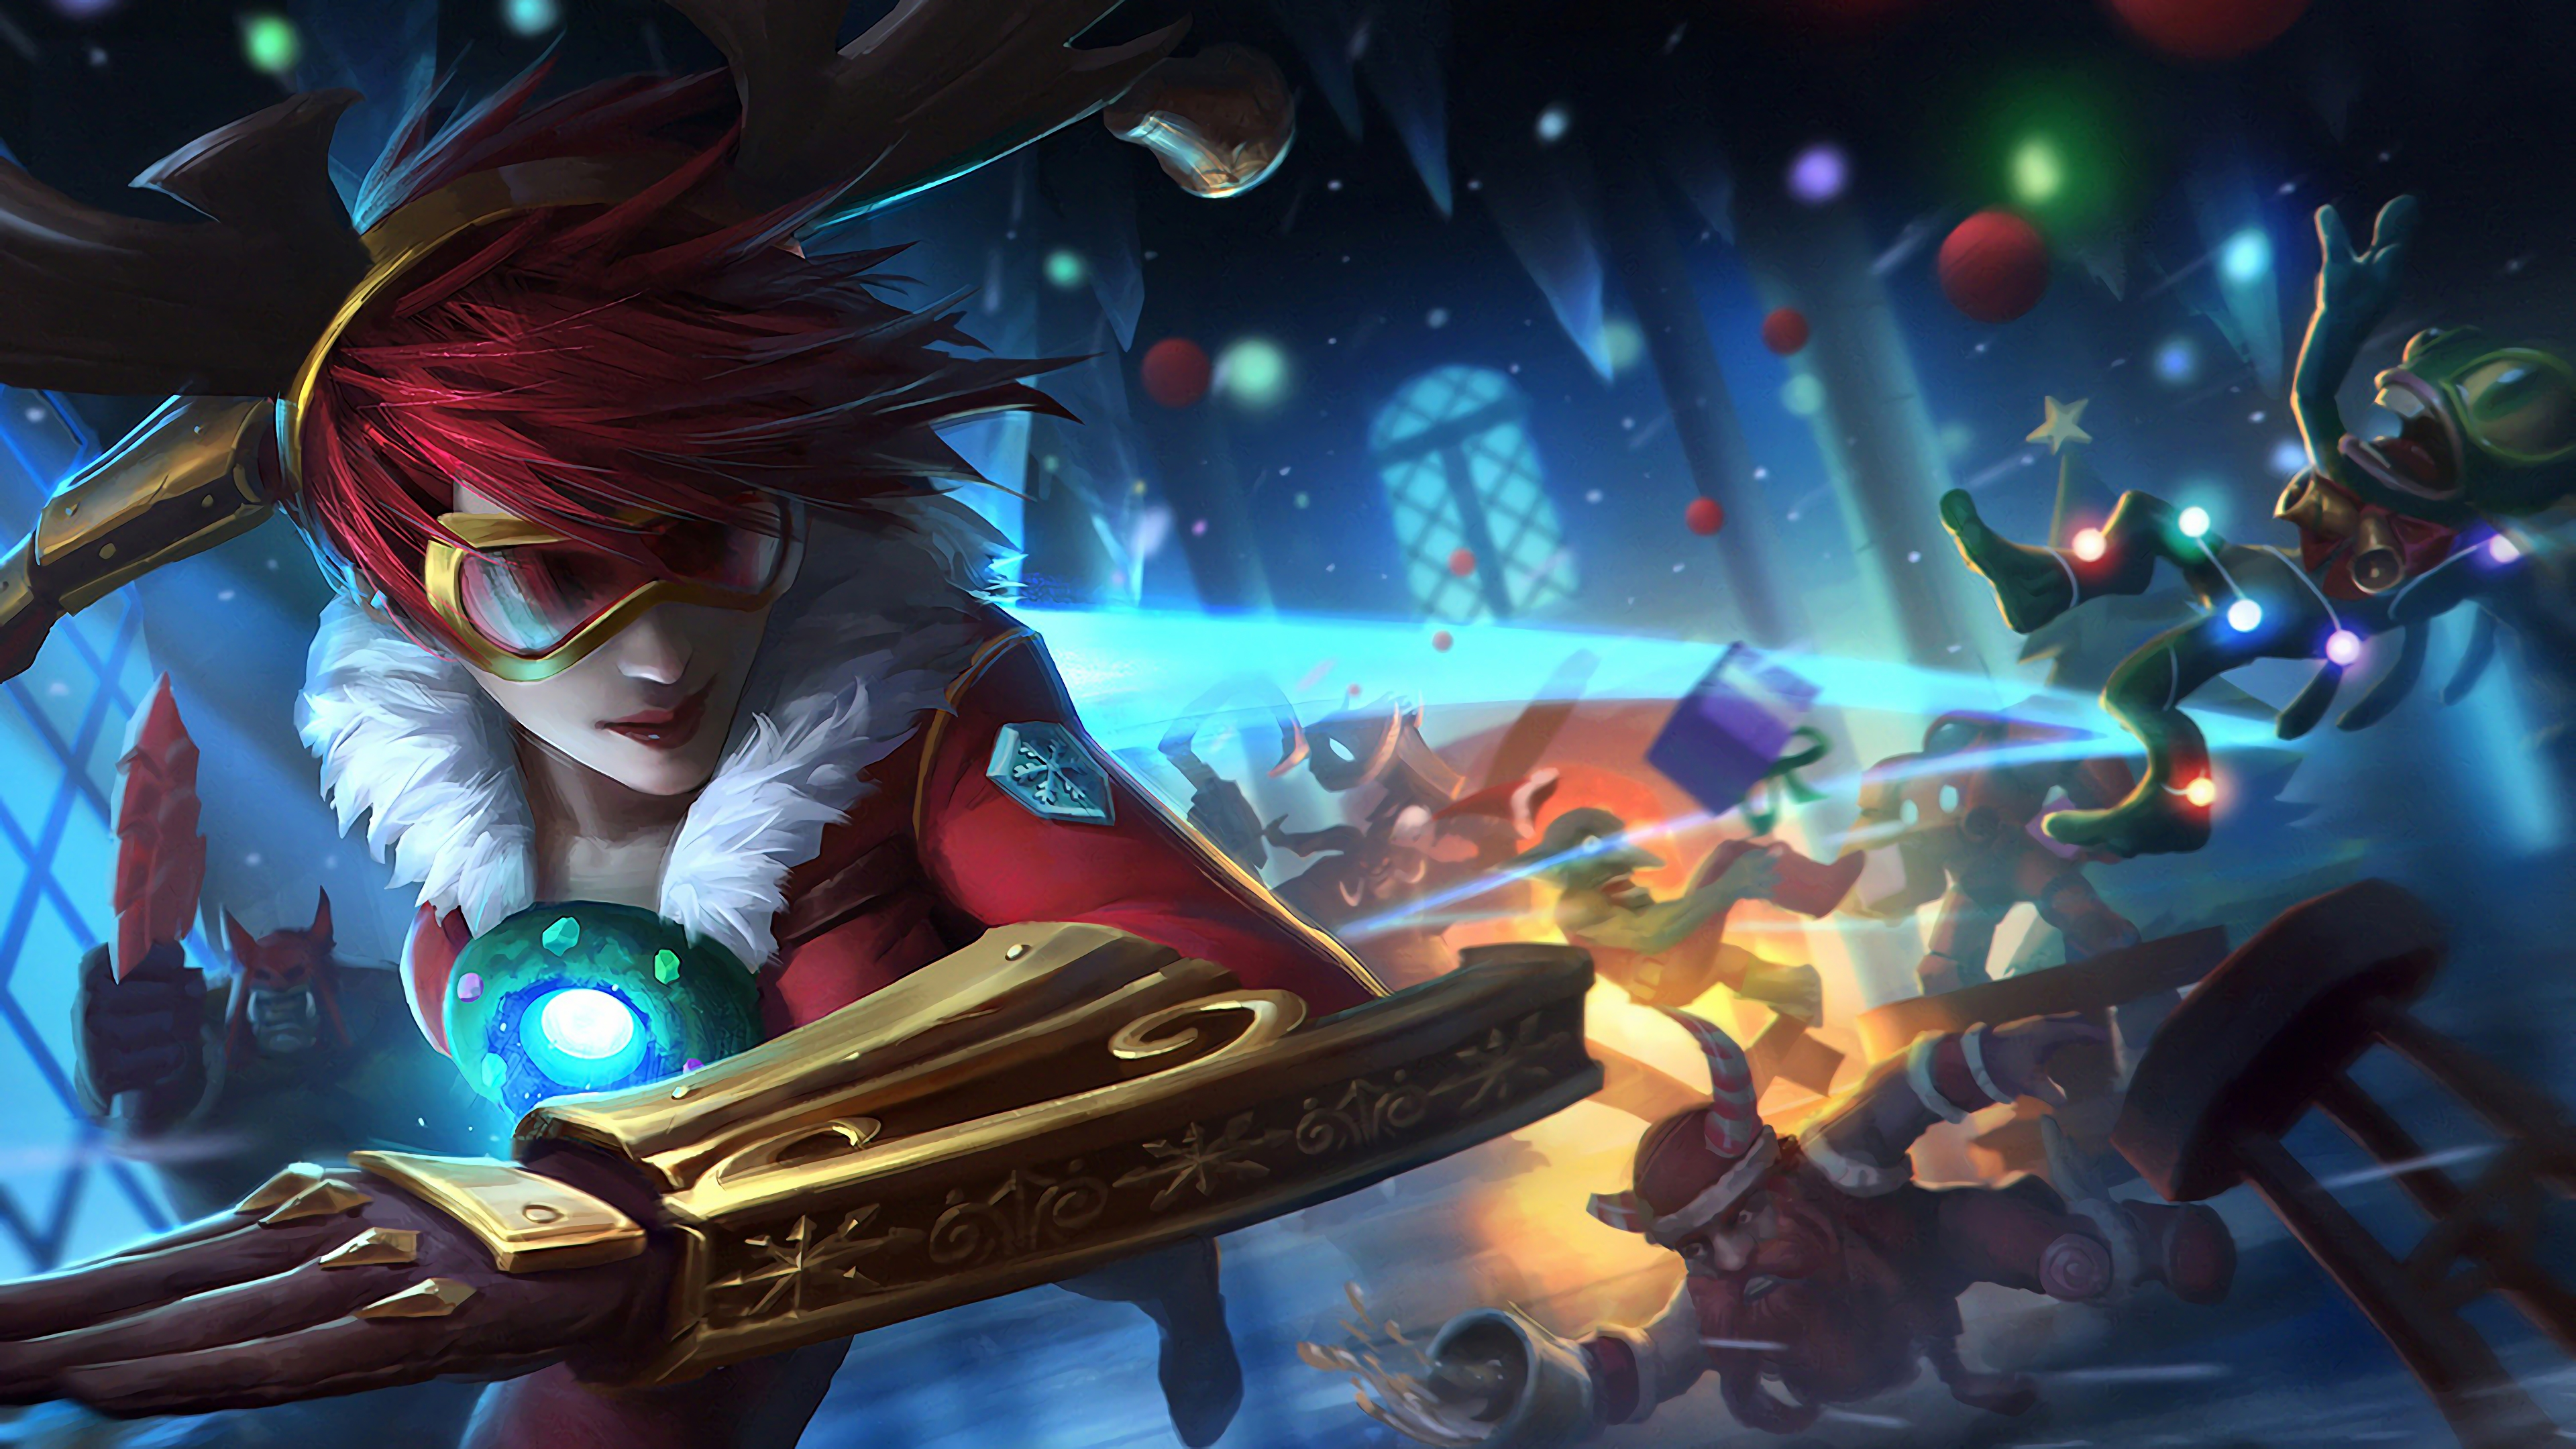 Tristana Lulu Poppy League Of Legends 4k Wallpapers Hd Wallpapers